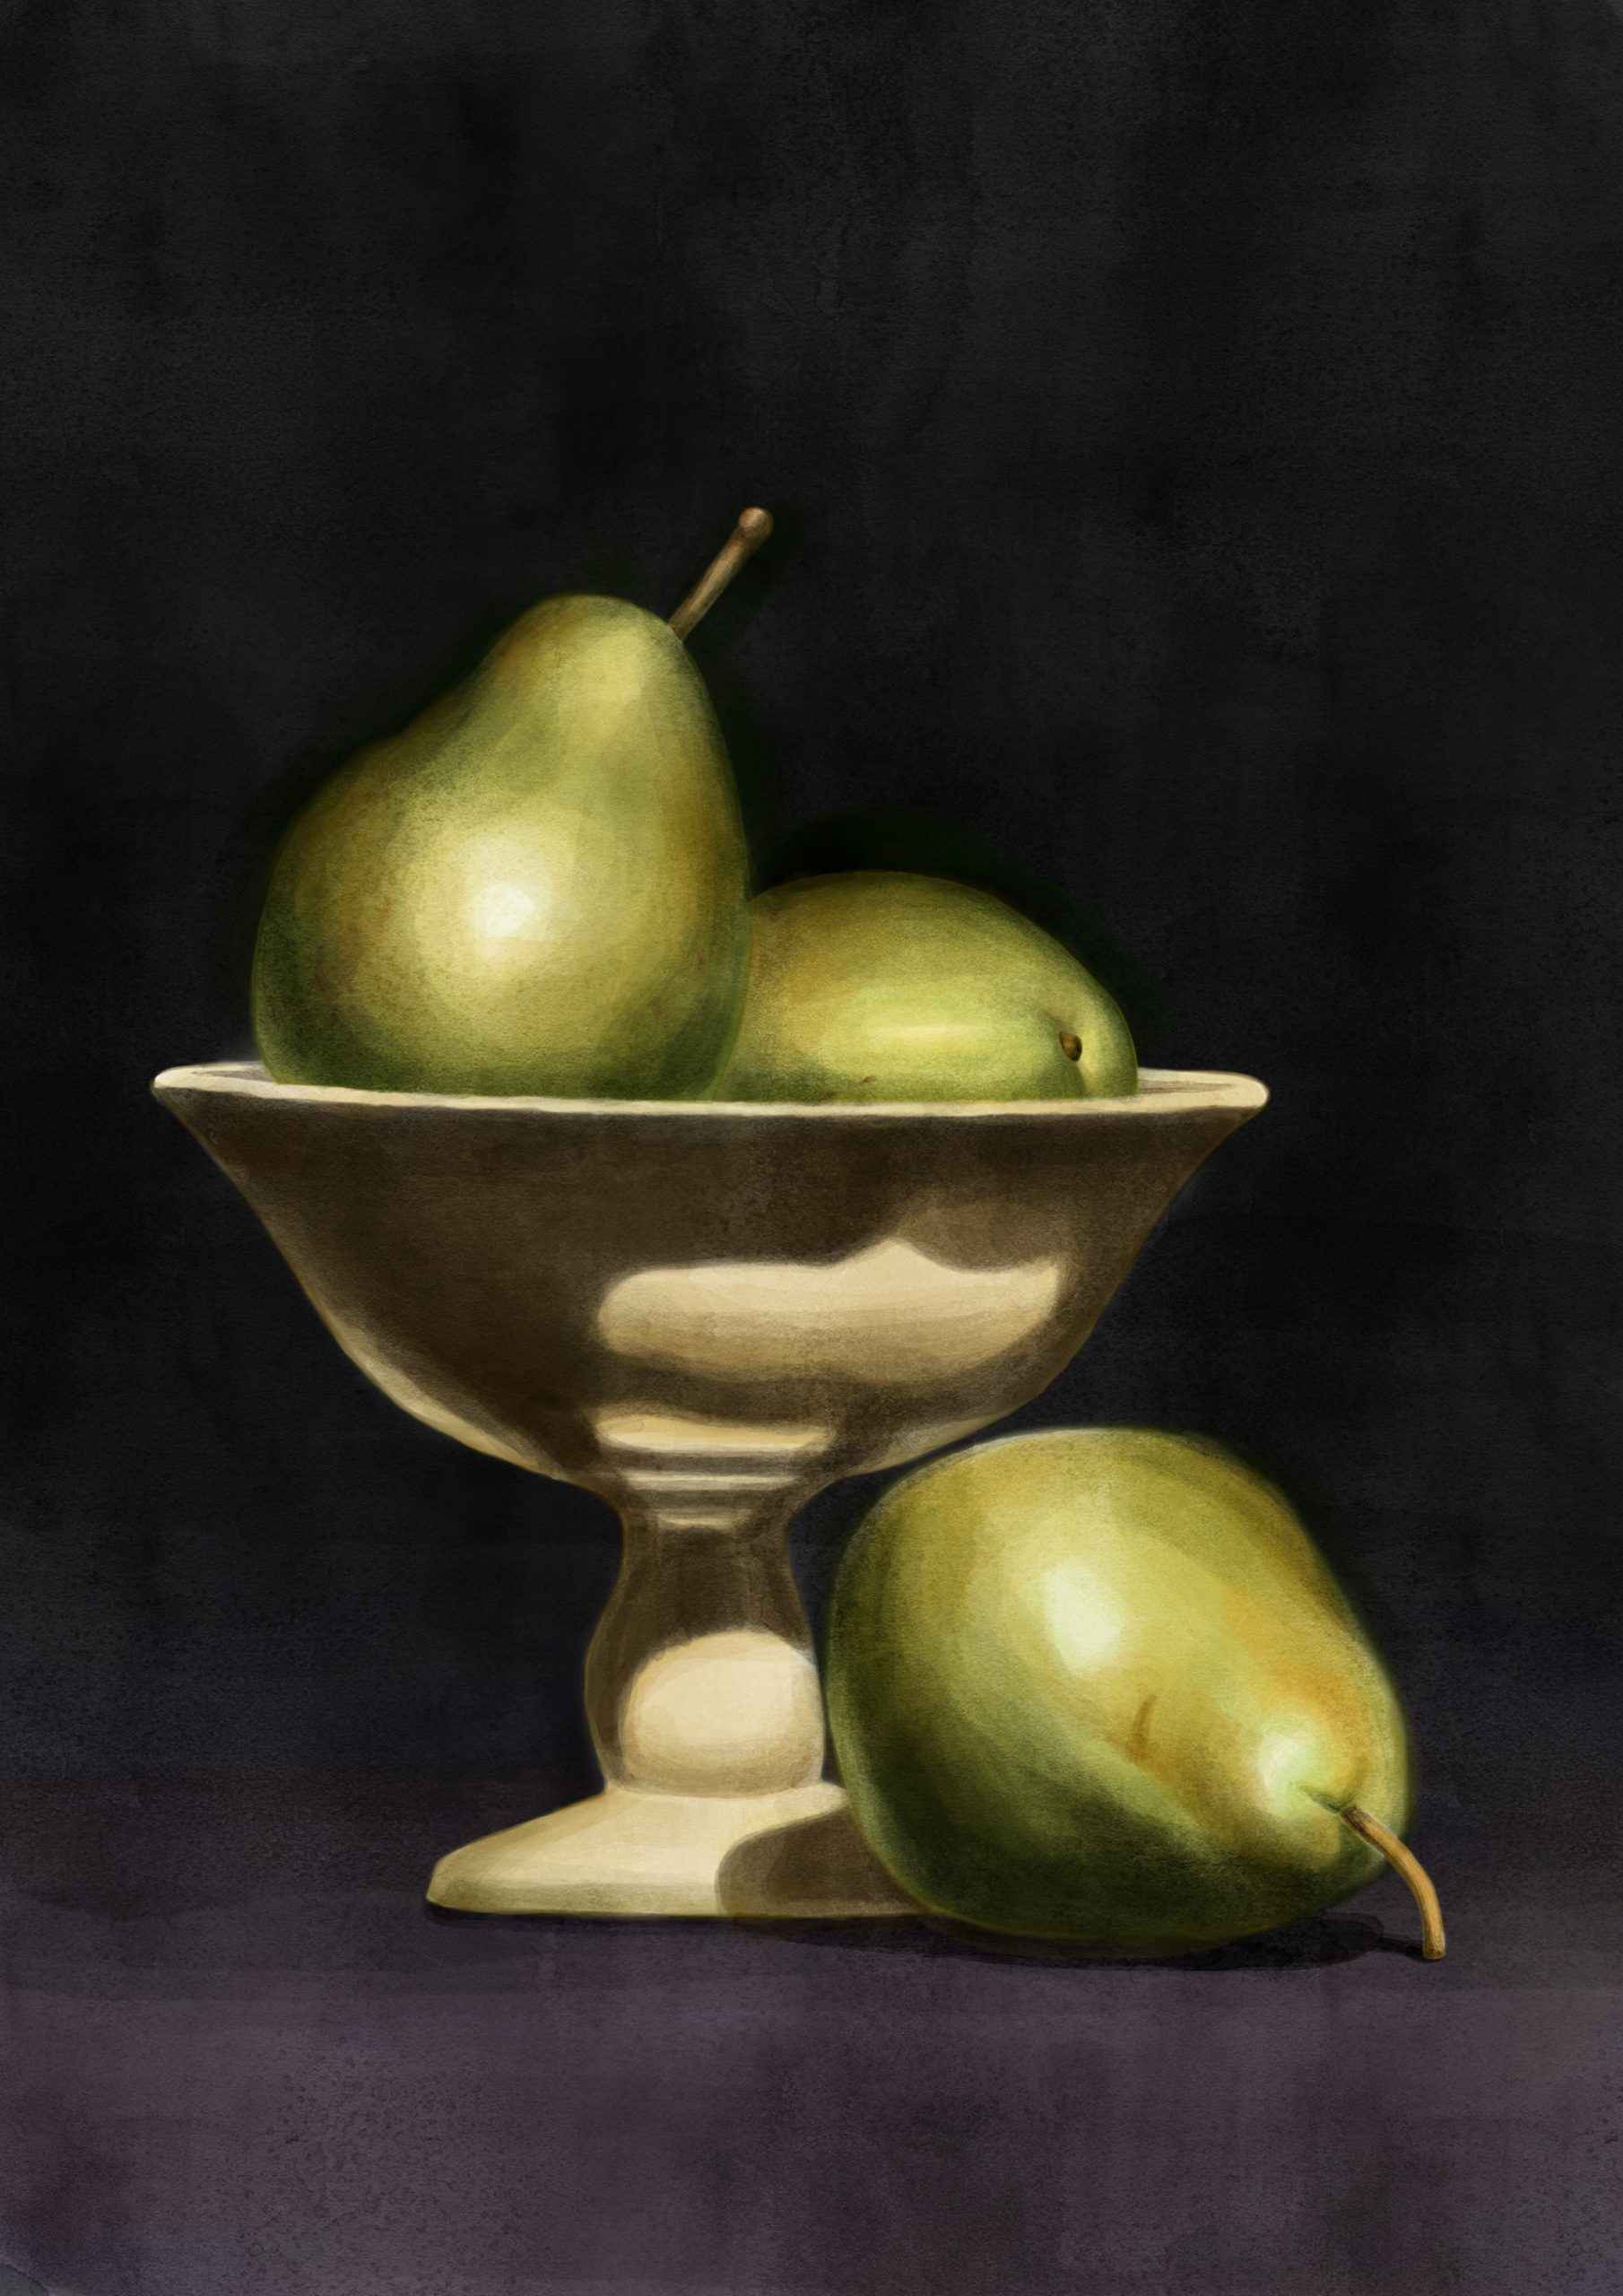 An illustration by Lisa Cuthbertson showing a stilllife with pears